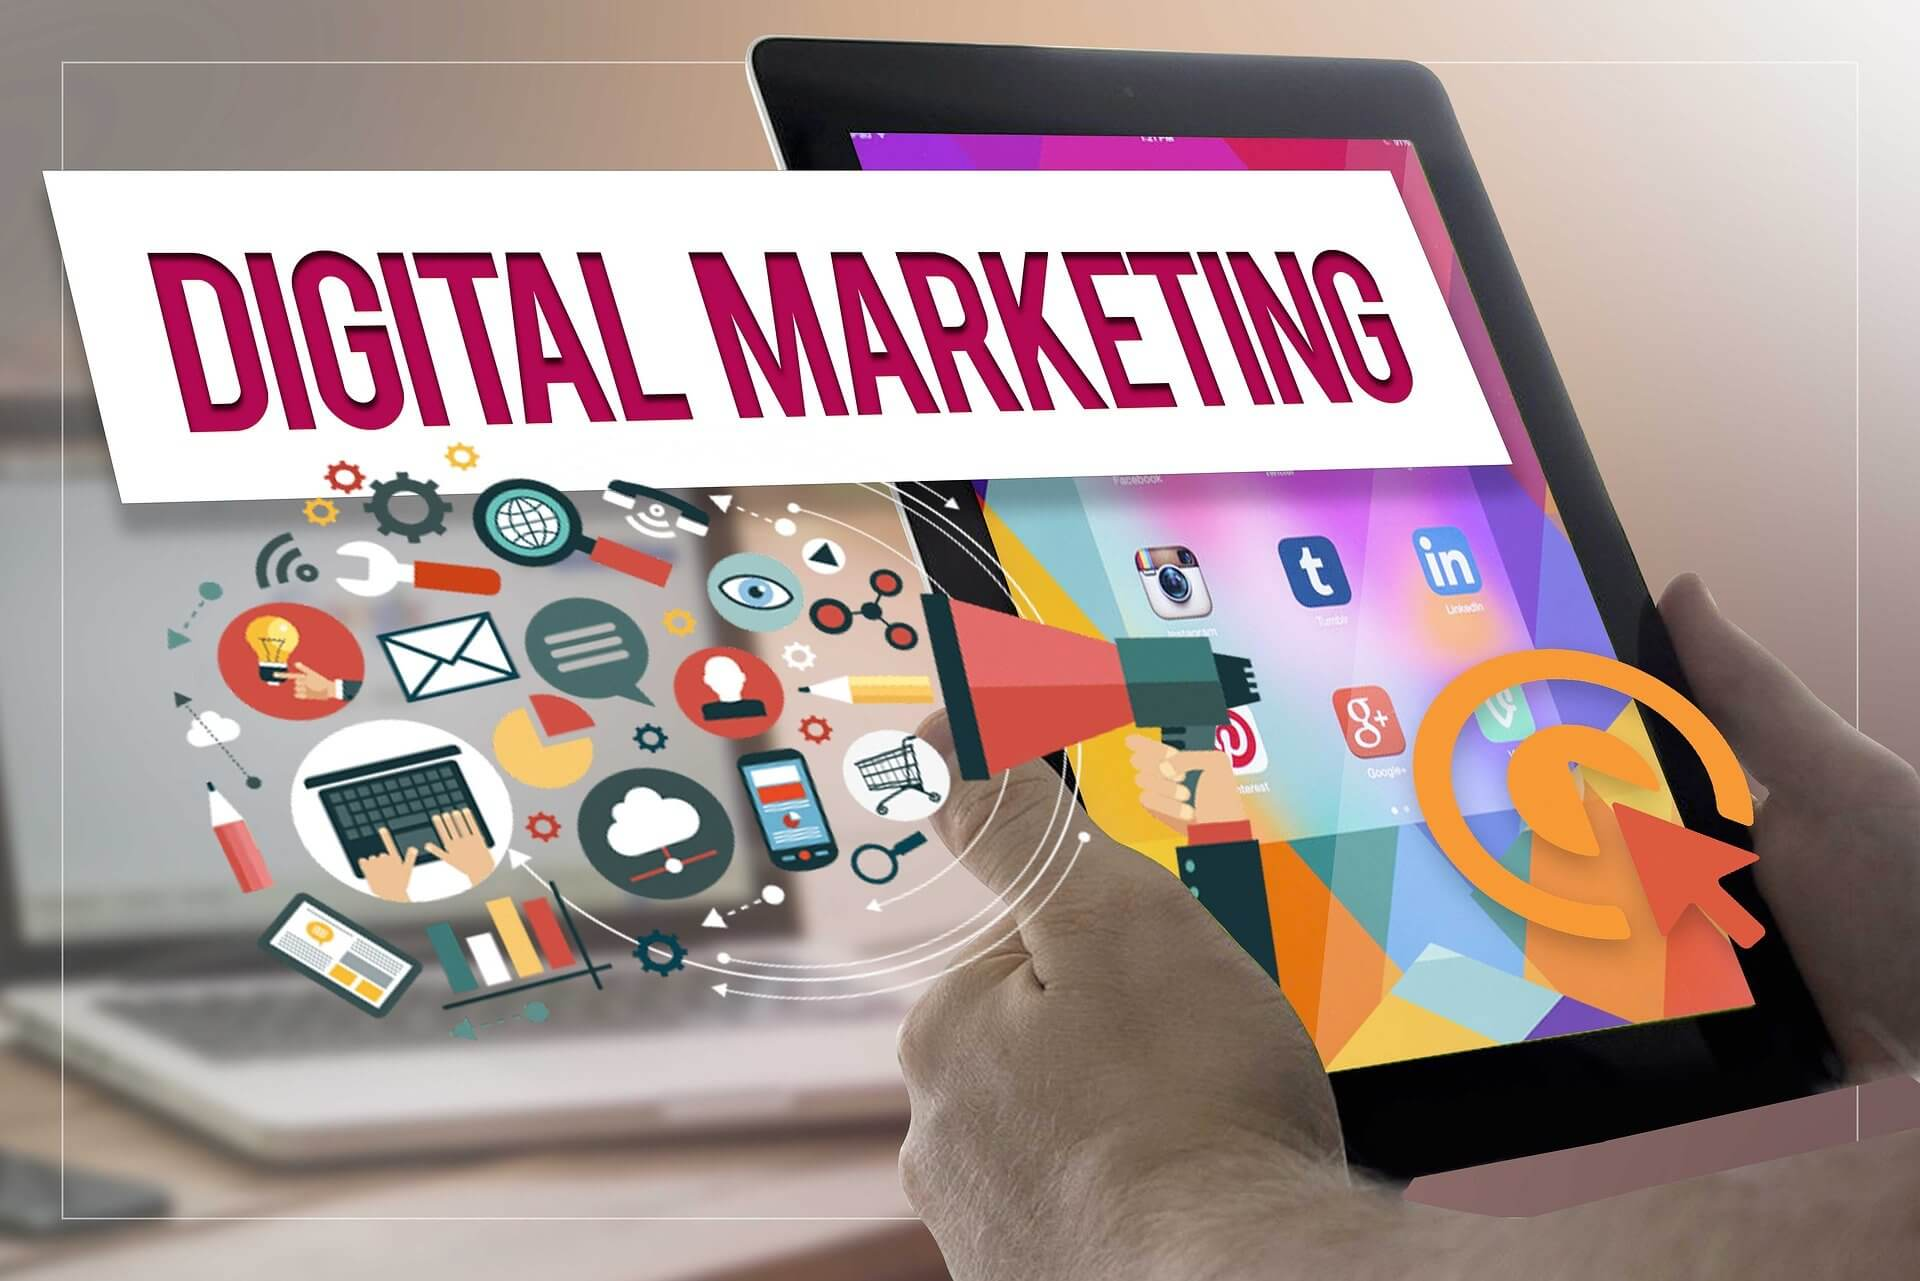 Digital marketings 1 - Mid-Year Digital Marketing Reflections And What We've Learnt